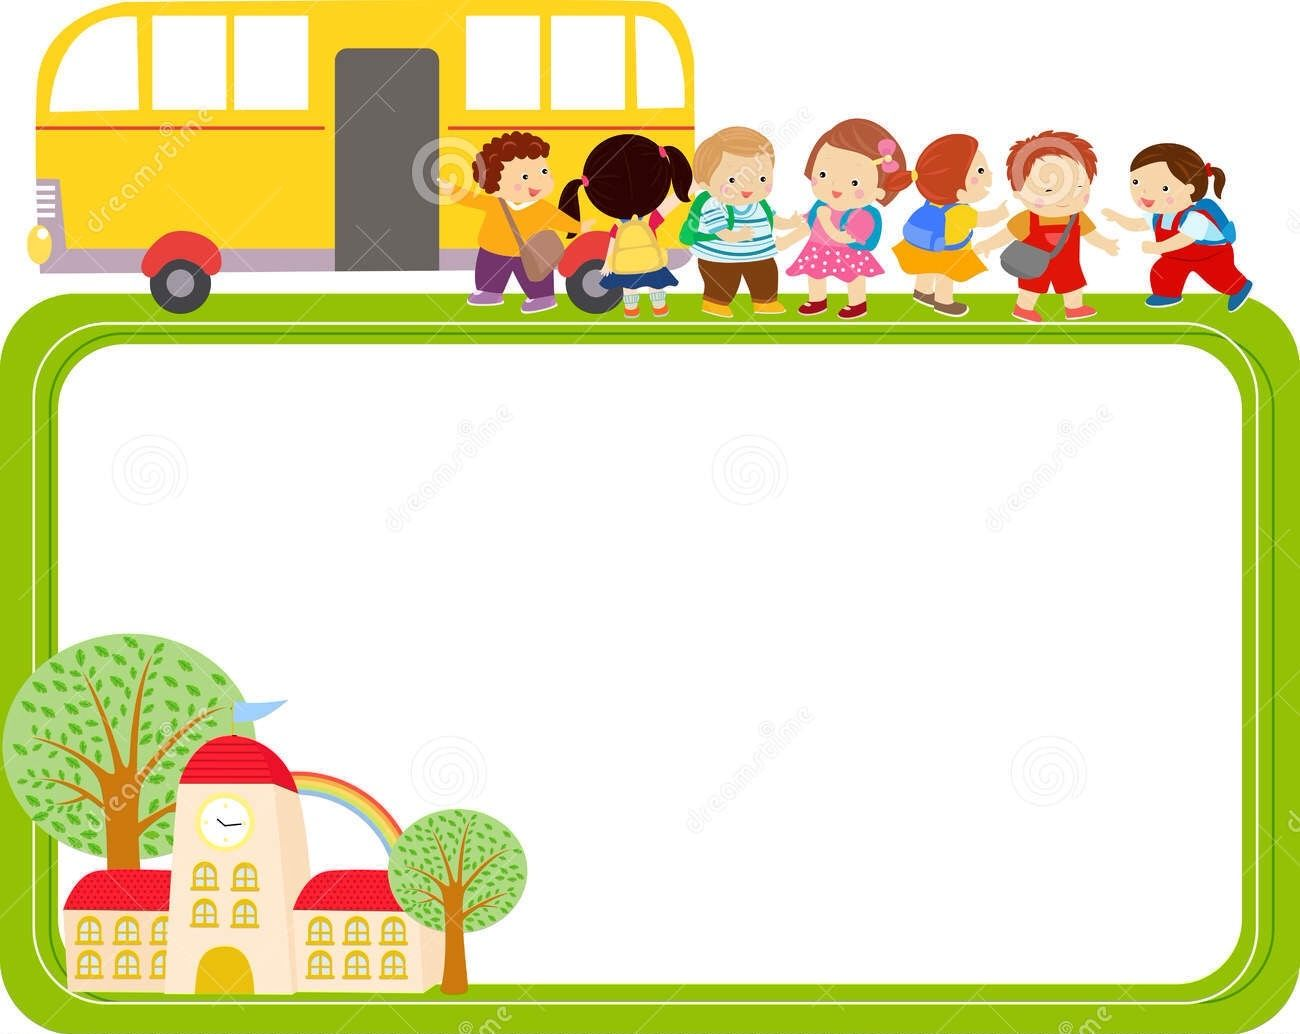 dreamstime | Bordure de page | Pinterest | School buses, School and ...